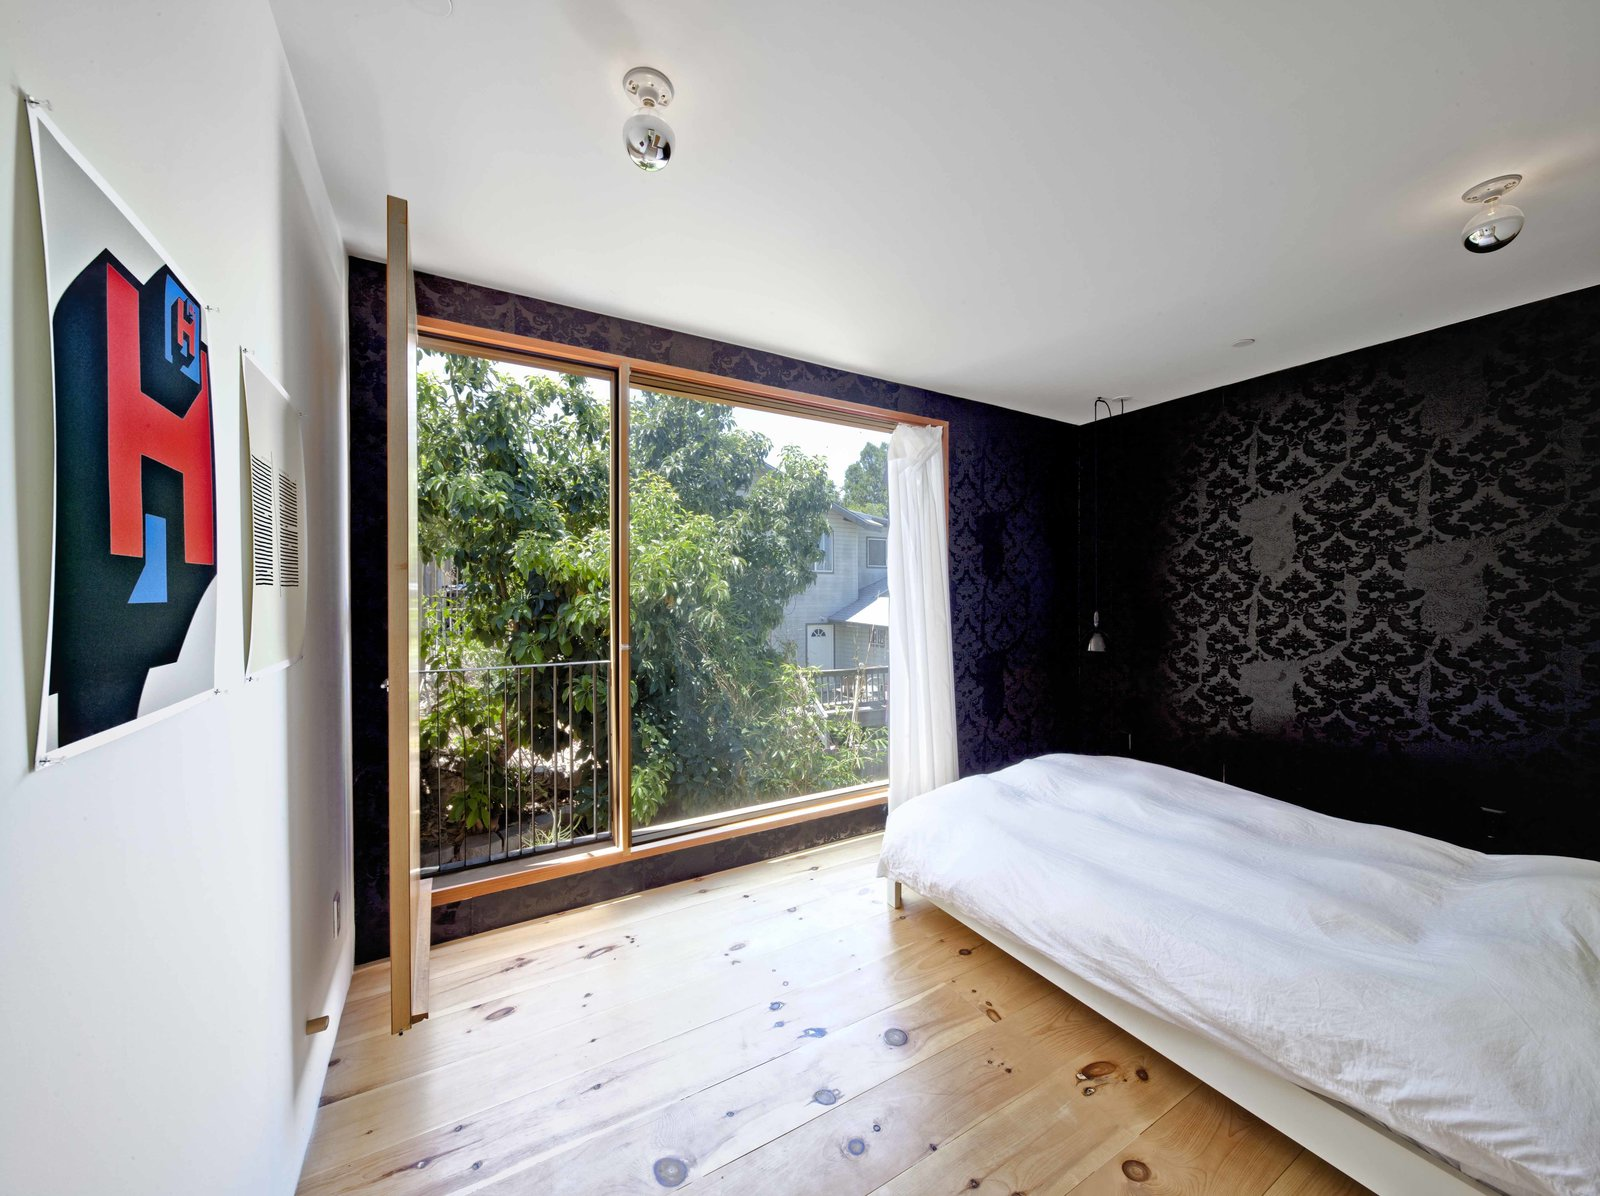 """The second story has two rooms and a bathroom. Storey uses the room overlooking the street as his architecture studio, and the quiet back room as a bedroom. Its small balcony is the height of the avocado tree canopy, giving him the sense that he sleeps in a tree.   The wallpaper is the architect's own design. """"The wallpaper is called Torn and Confused,"""" he says. """"It was originally designed to look like it was torn from the wall, exposing another layer of wallpaper underneath. I love the irony of using it on a new house.""""  Photo 6 of 9 in Home and Studio Maximizes Very Narrow Site in Echo Park"""